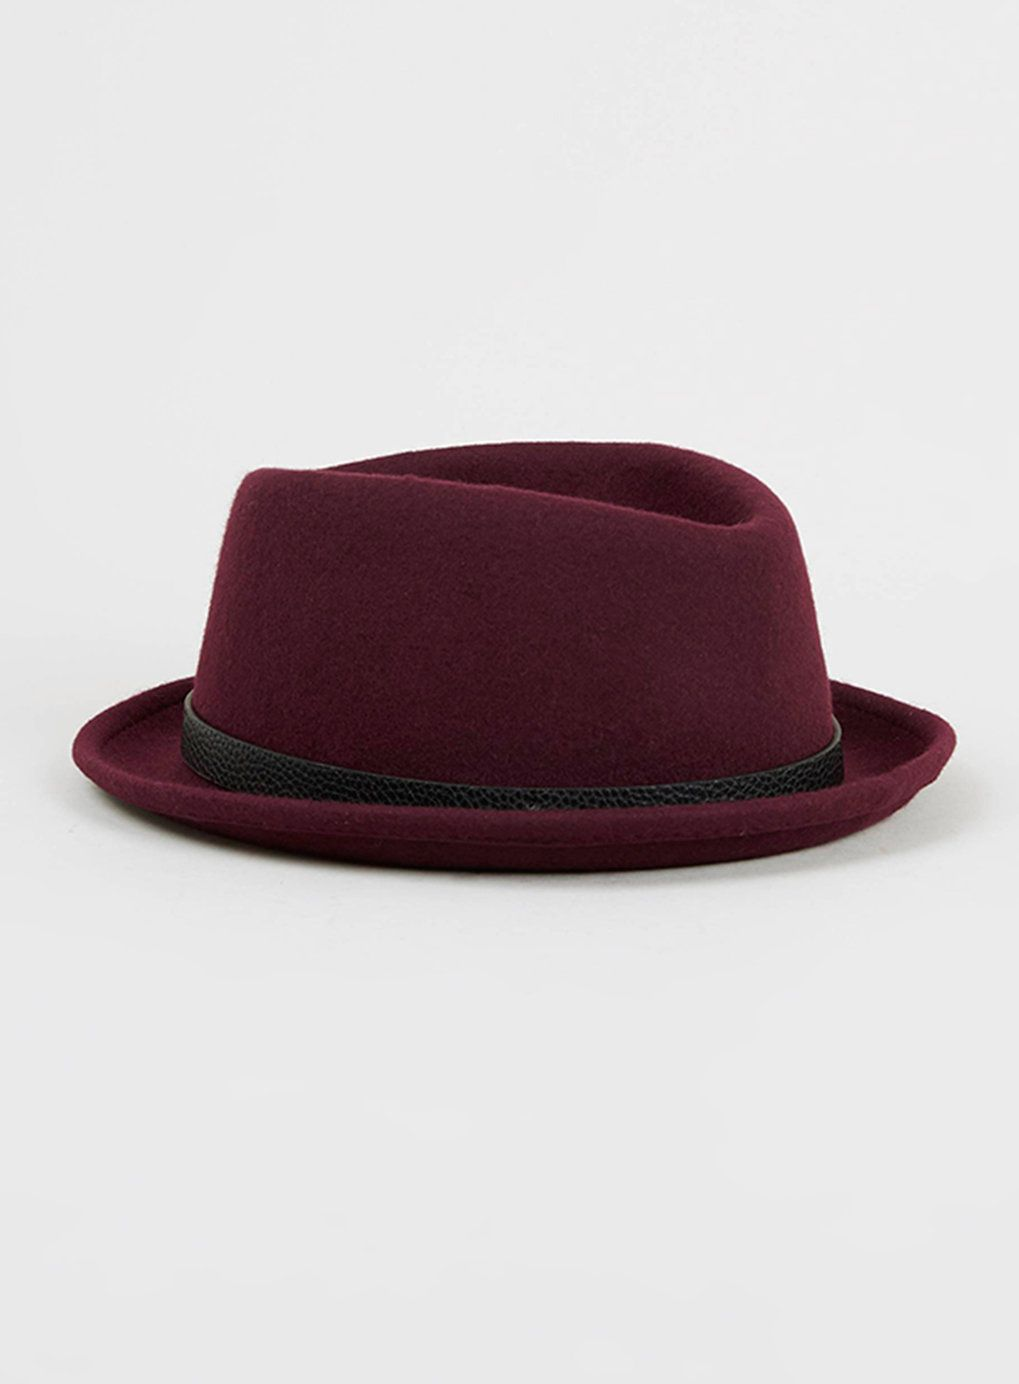 8e9edd964db Burgundy Pork Pie Hat - Topman. For mens fashion check out the latest  ranges at Topman online and buy ...